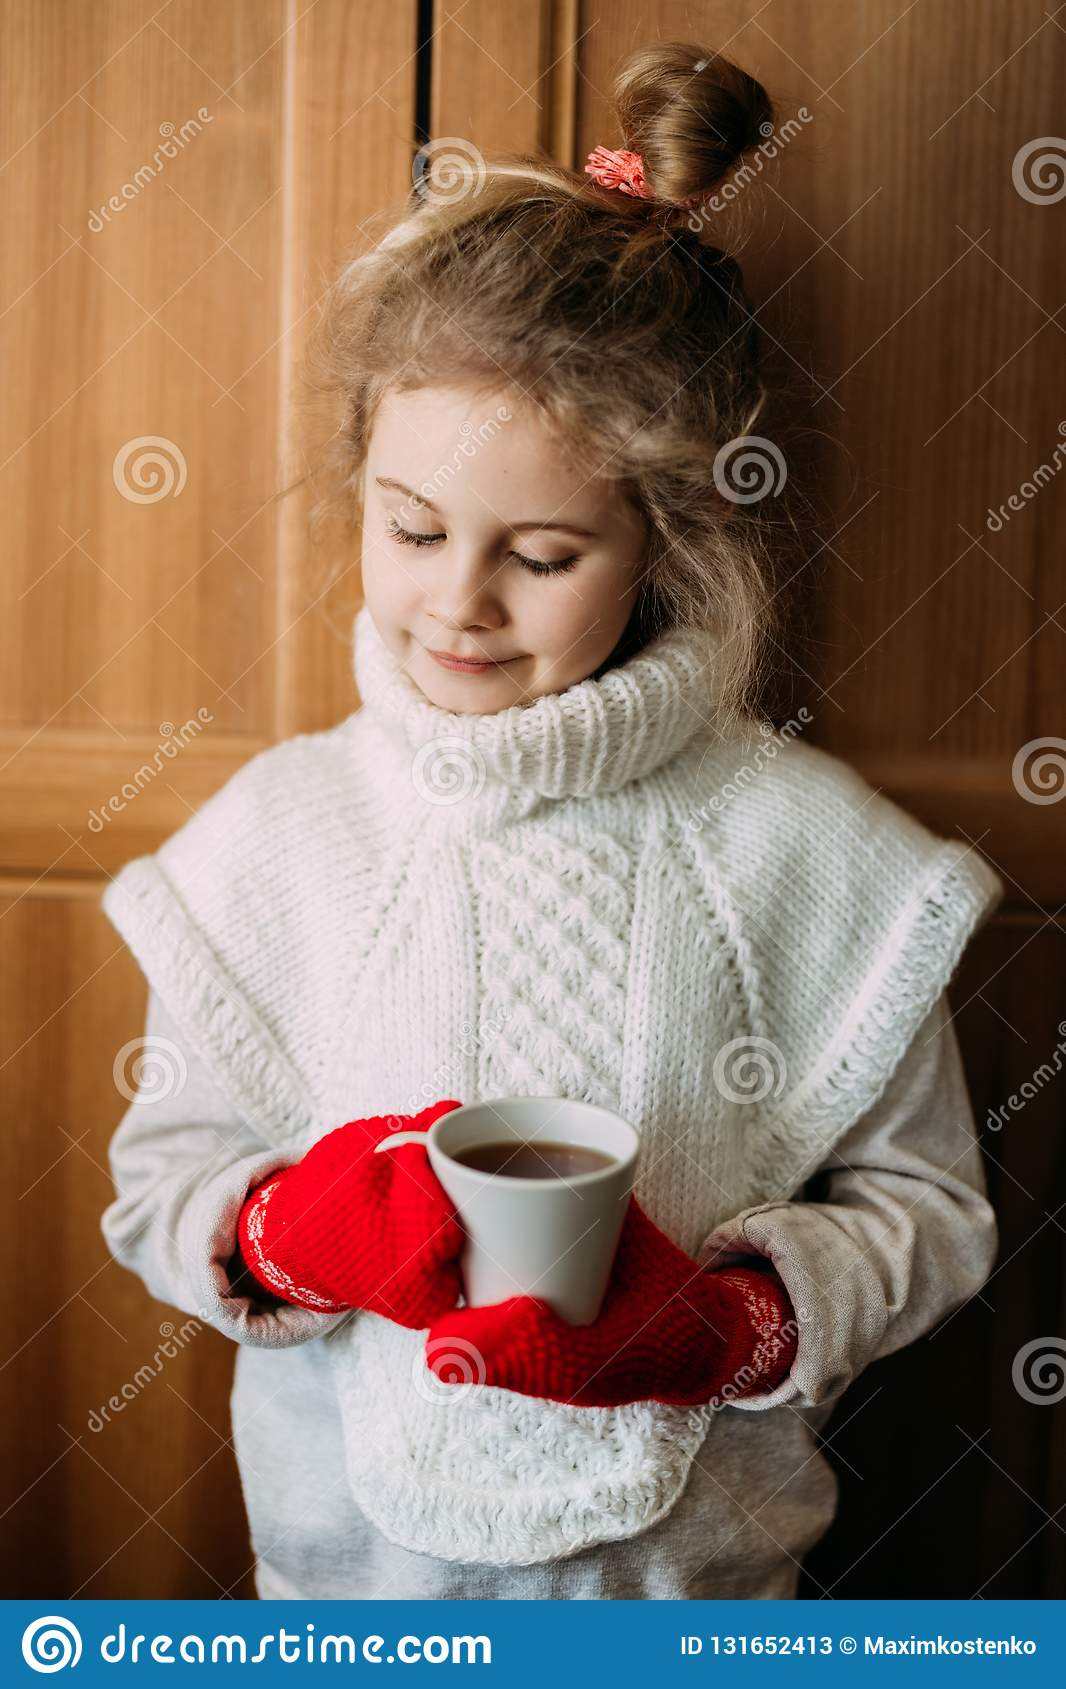 Charming seven-year-old girl drinks warm tea, standing next to the window. She is wearing a warm knitted sweater, her